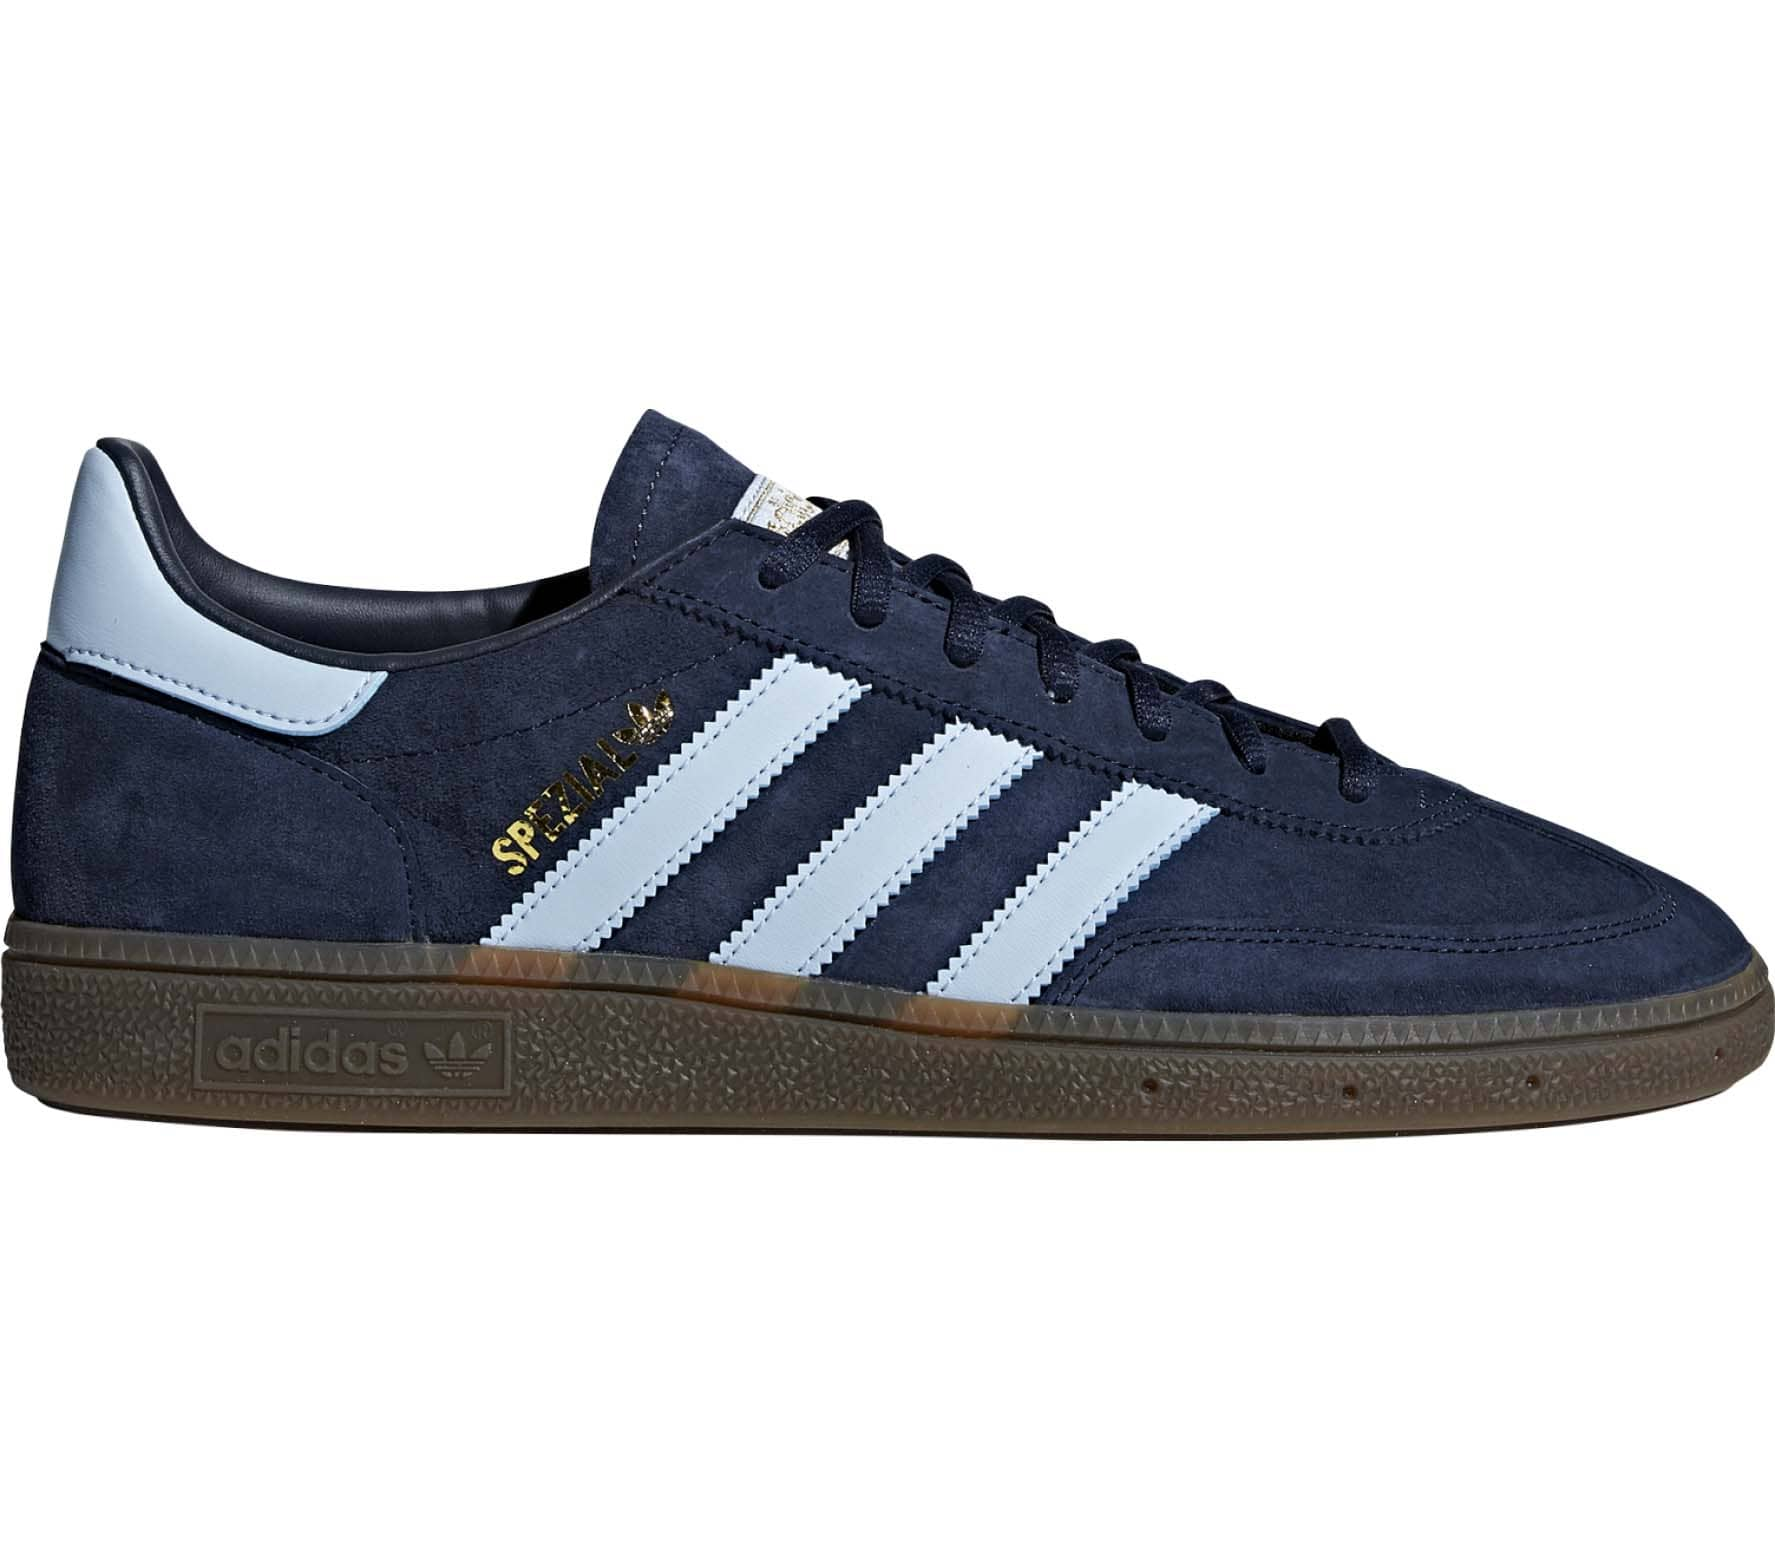 detailed look dd011 5034d adidas Originals - Handball Spezial Herren Sneaker (blau)